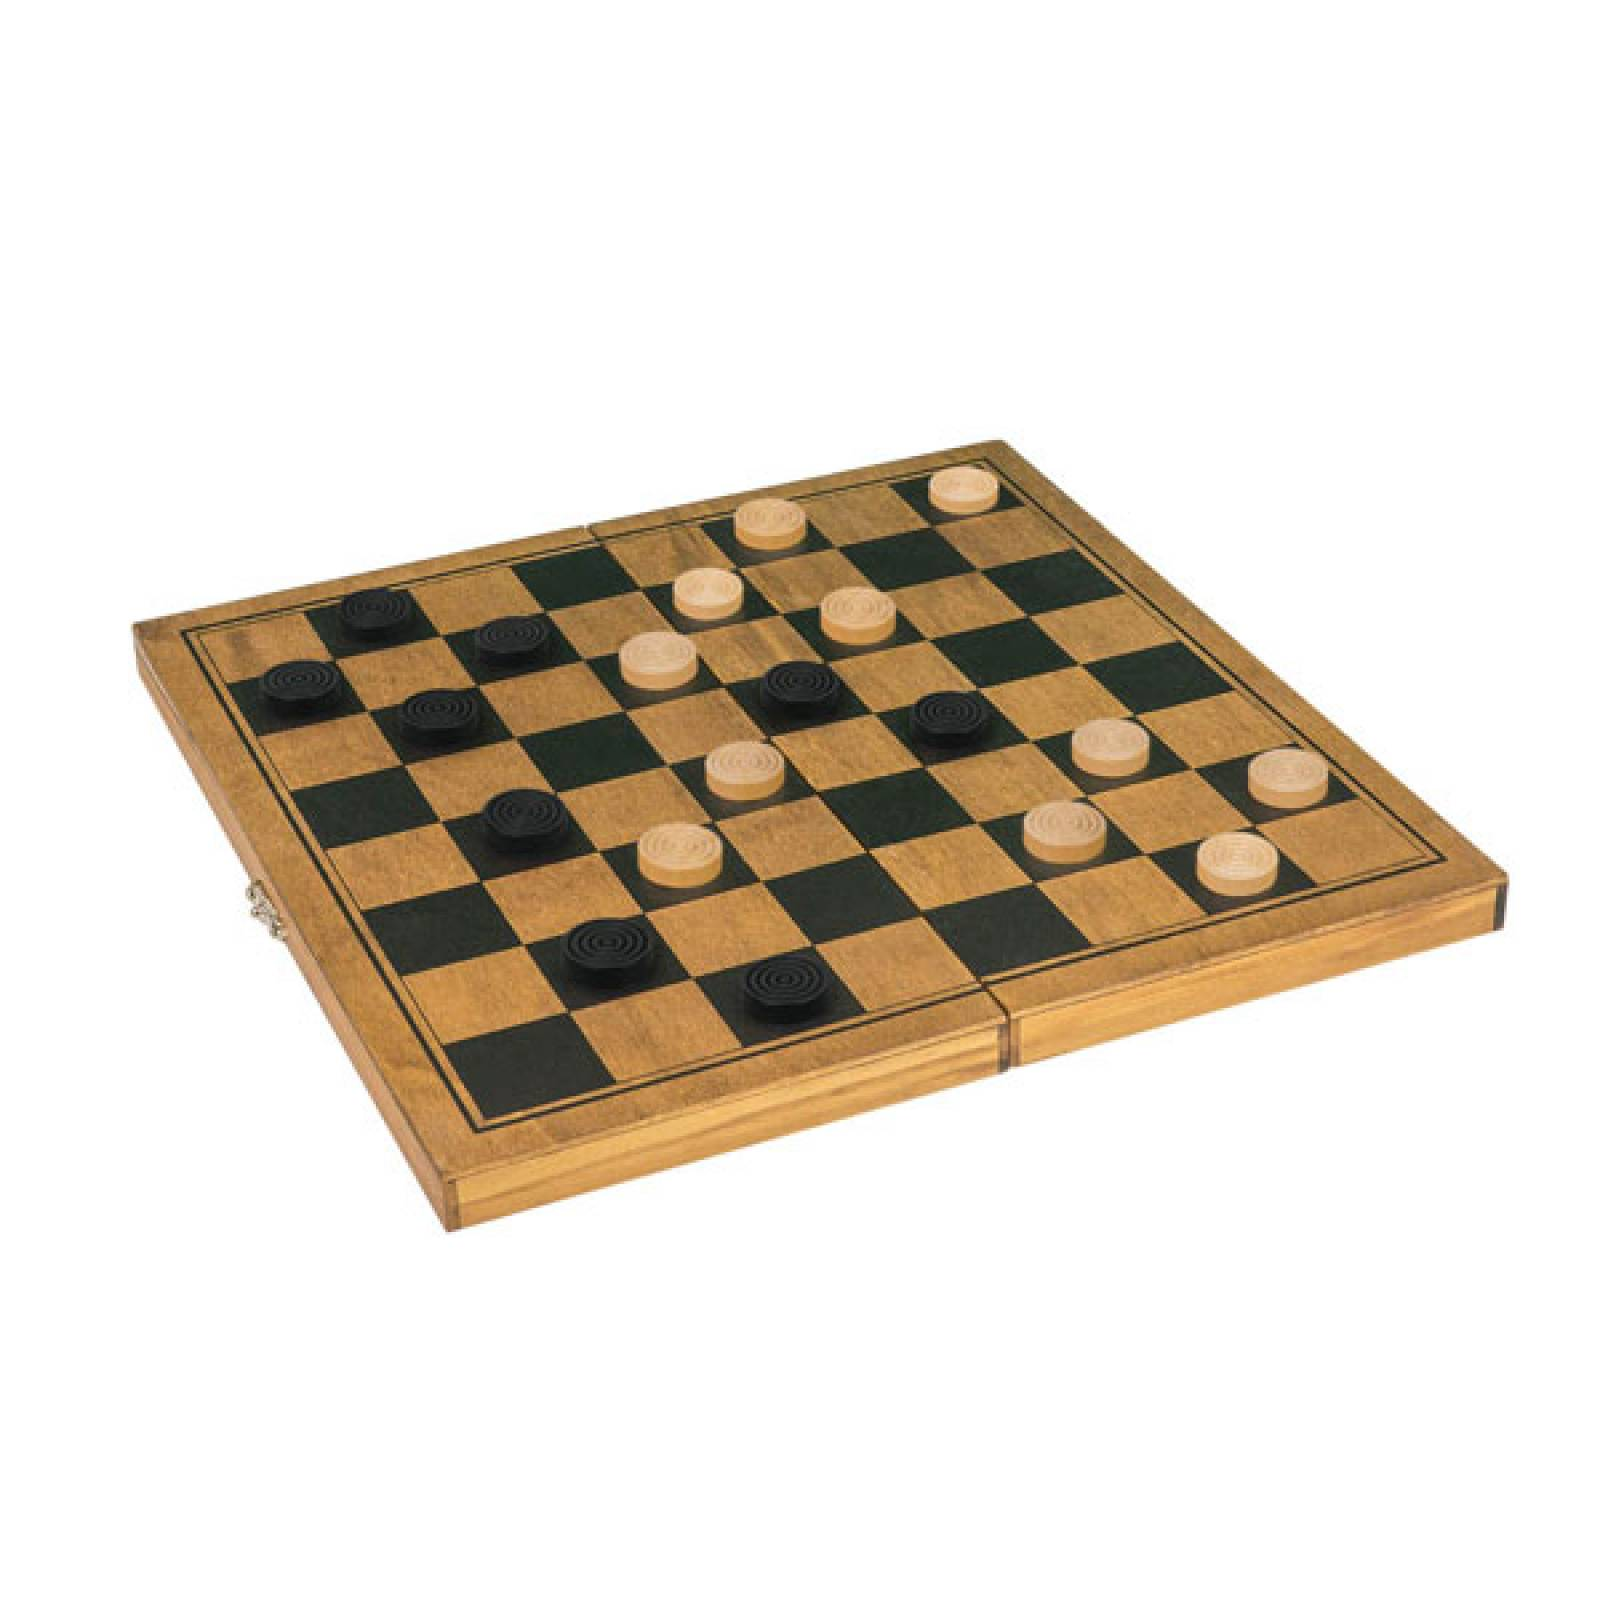 DRAUGHTS Handcrafted Wooden Board Game thumbnails